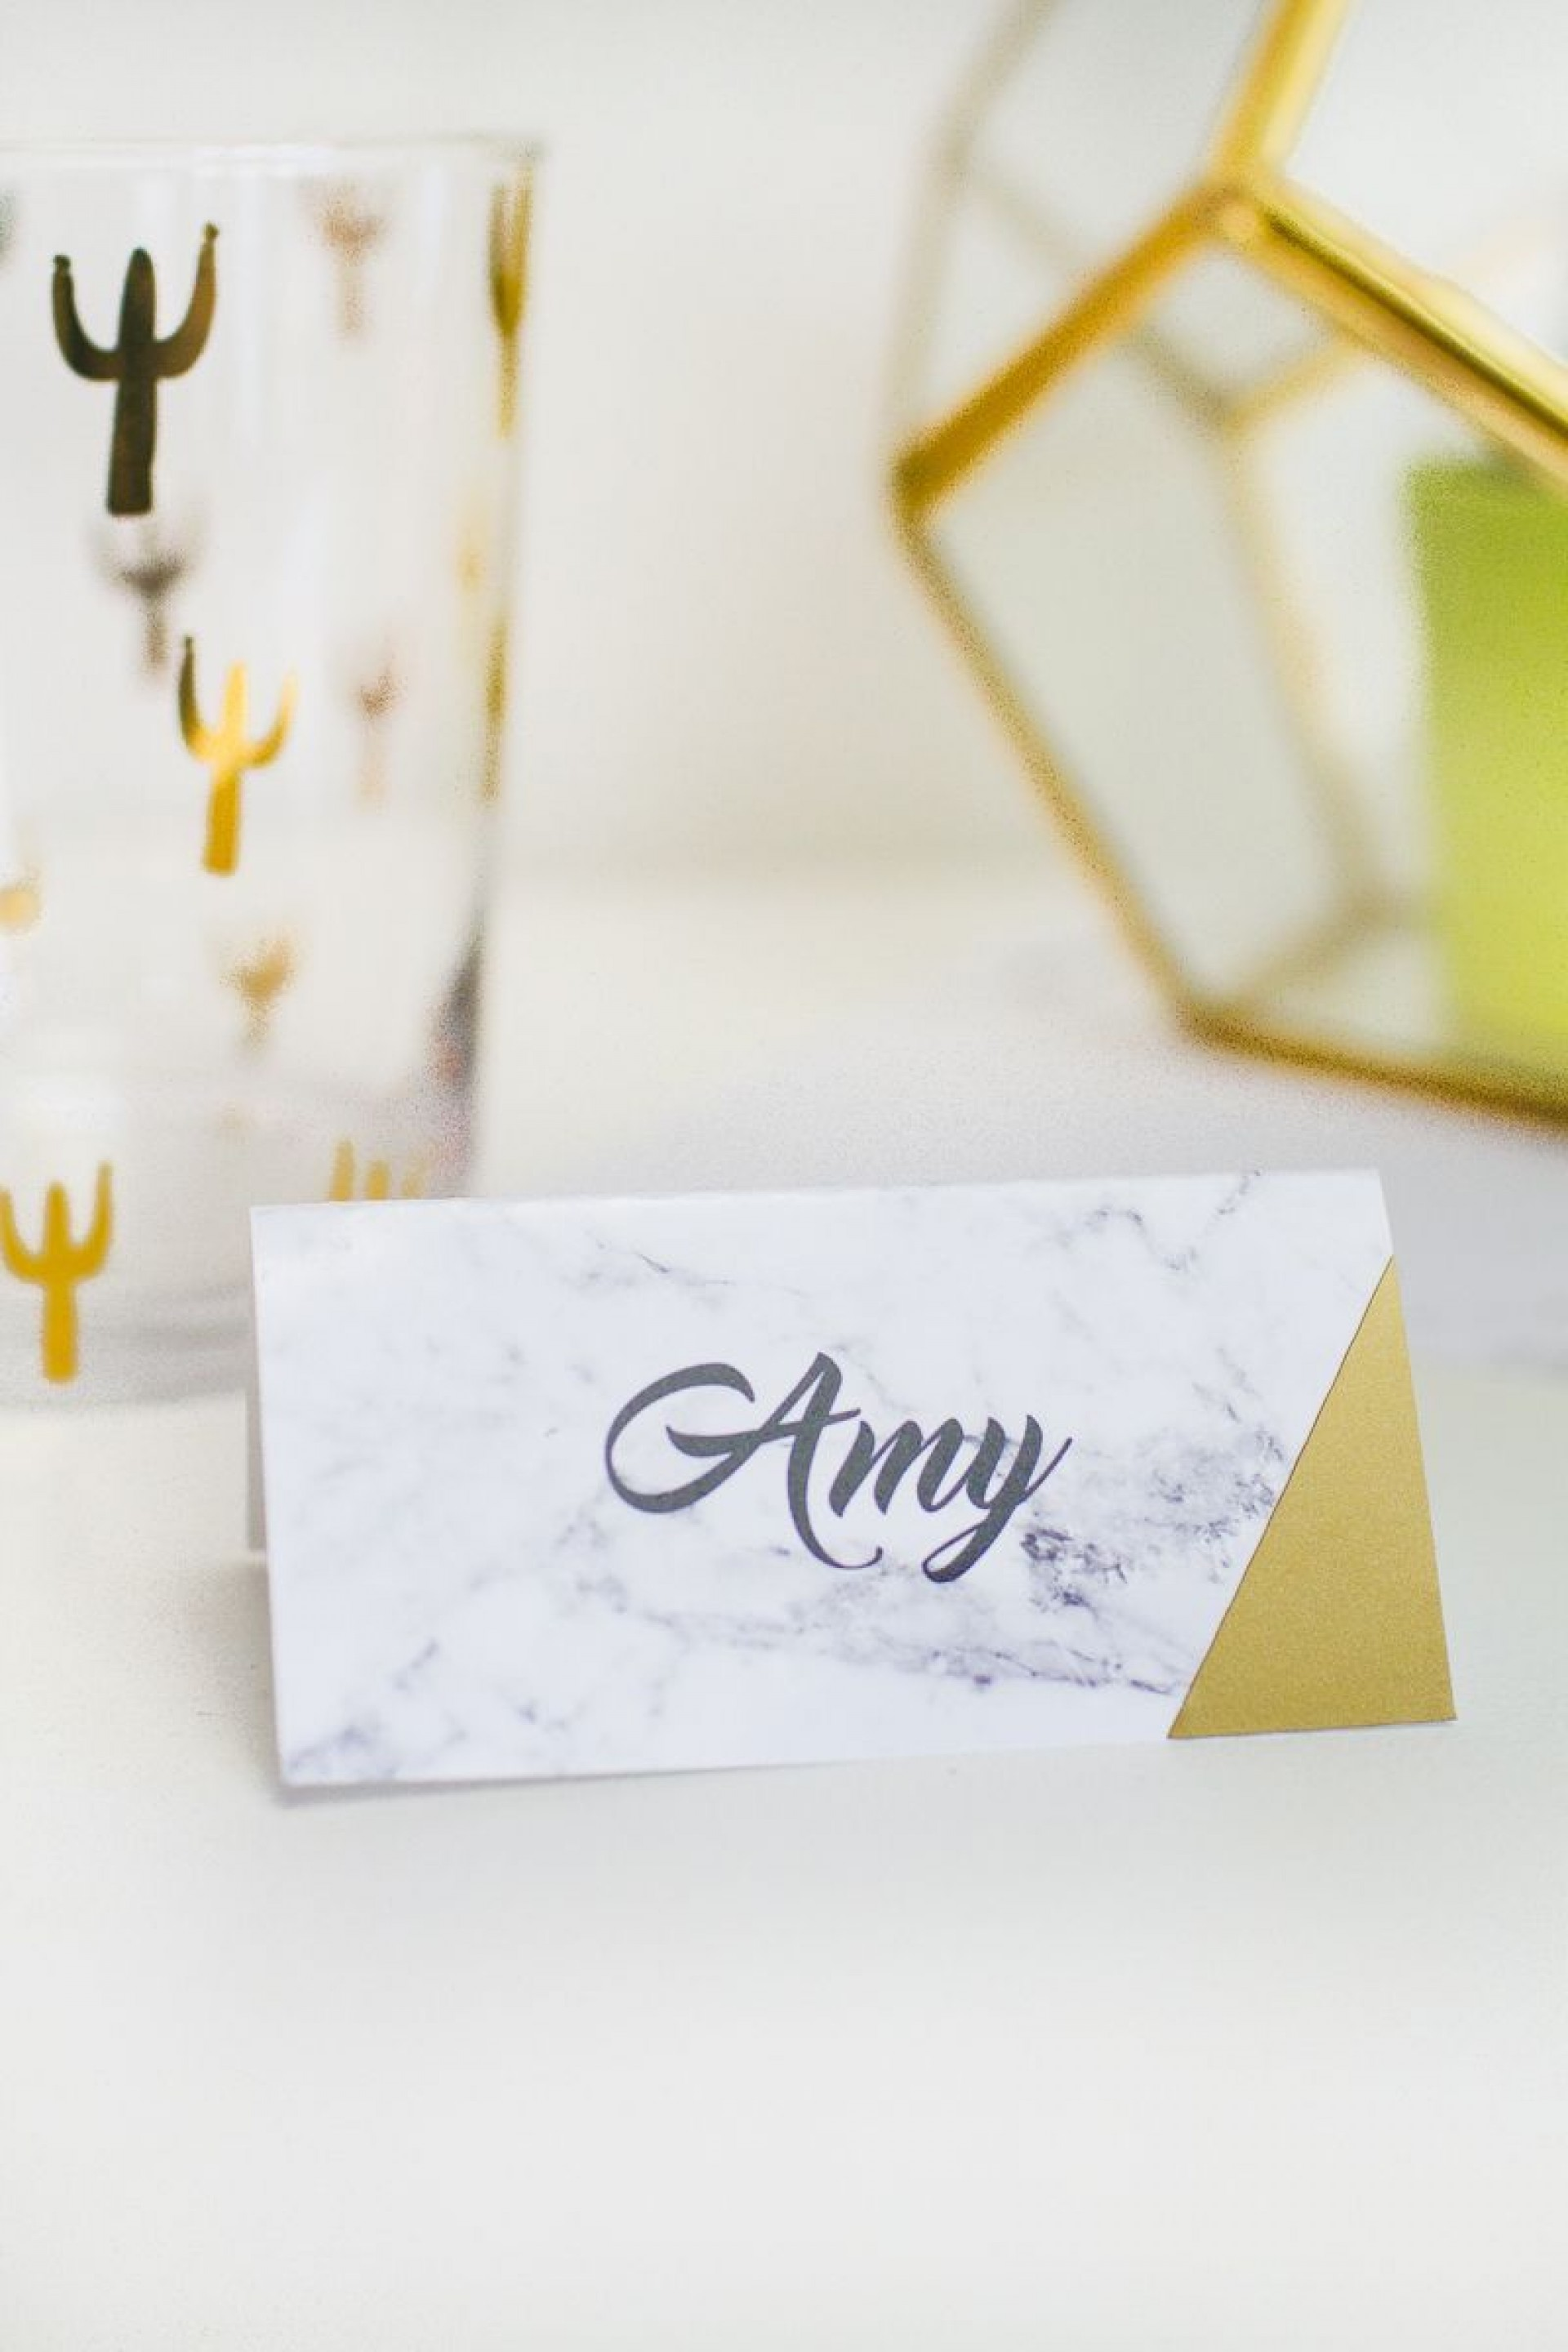 001 Beautiful Free Table Name Place Card Template Sample  Placement1920